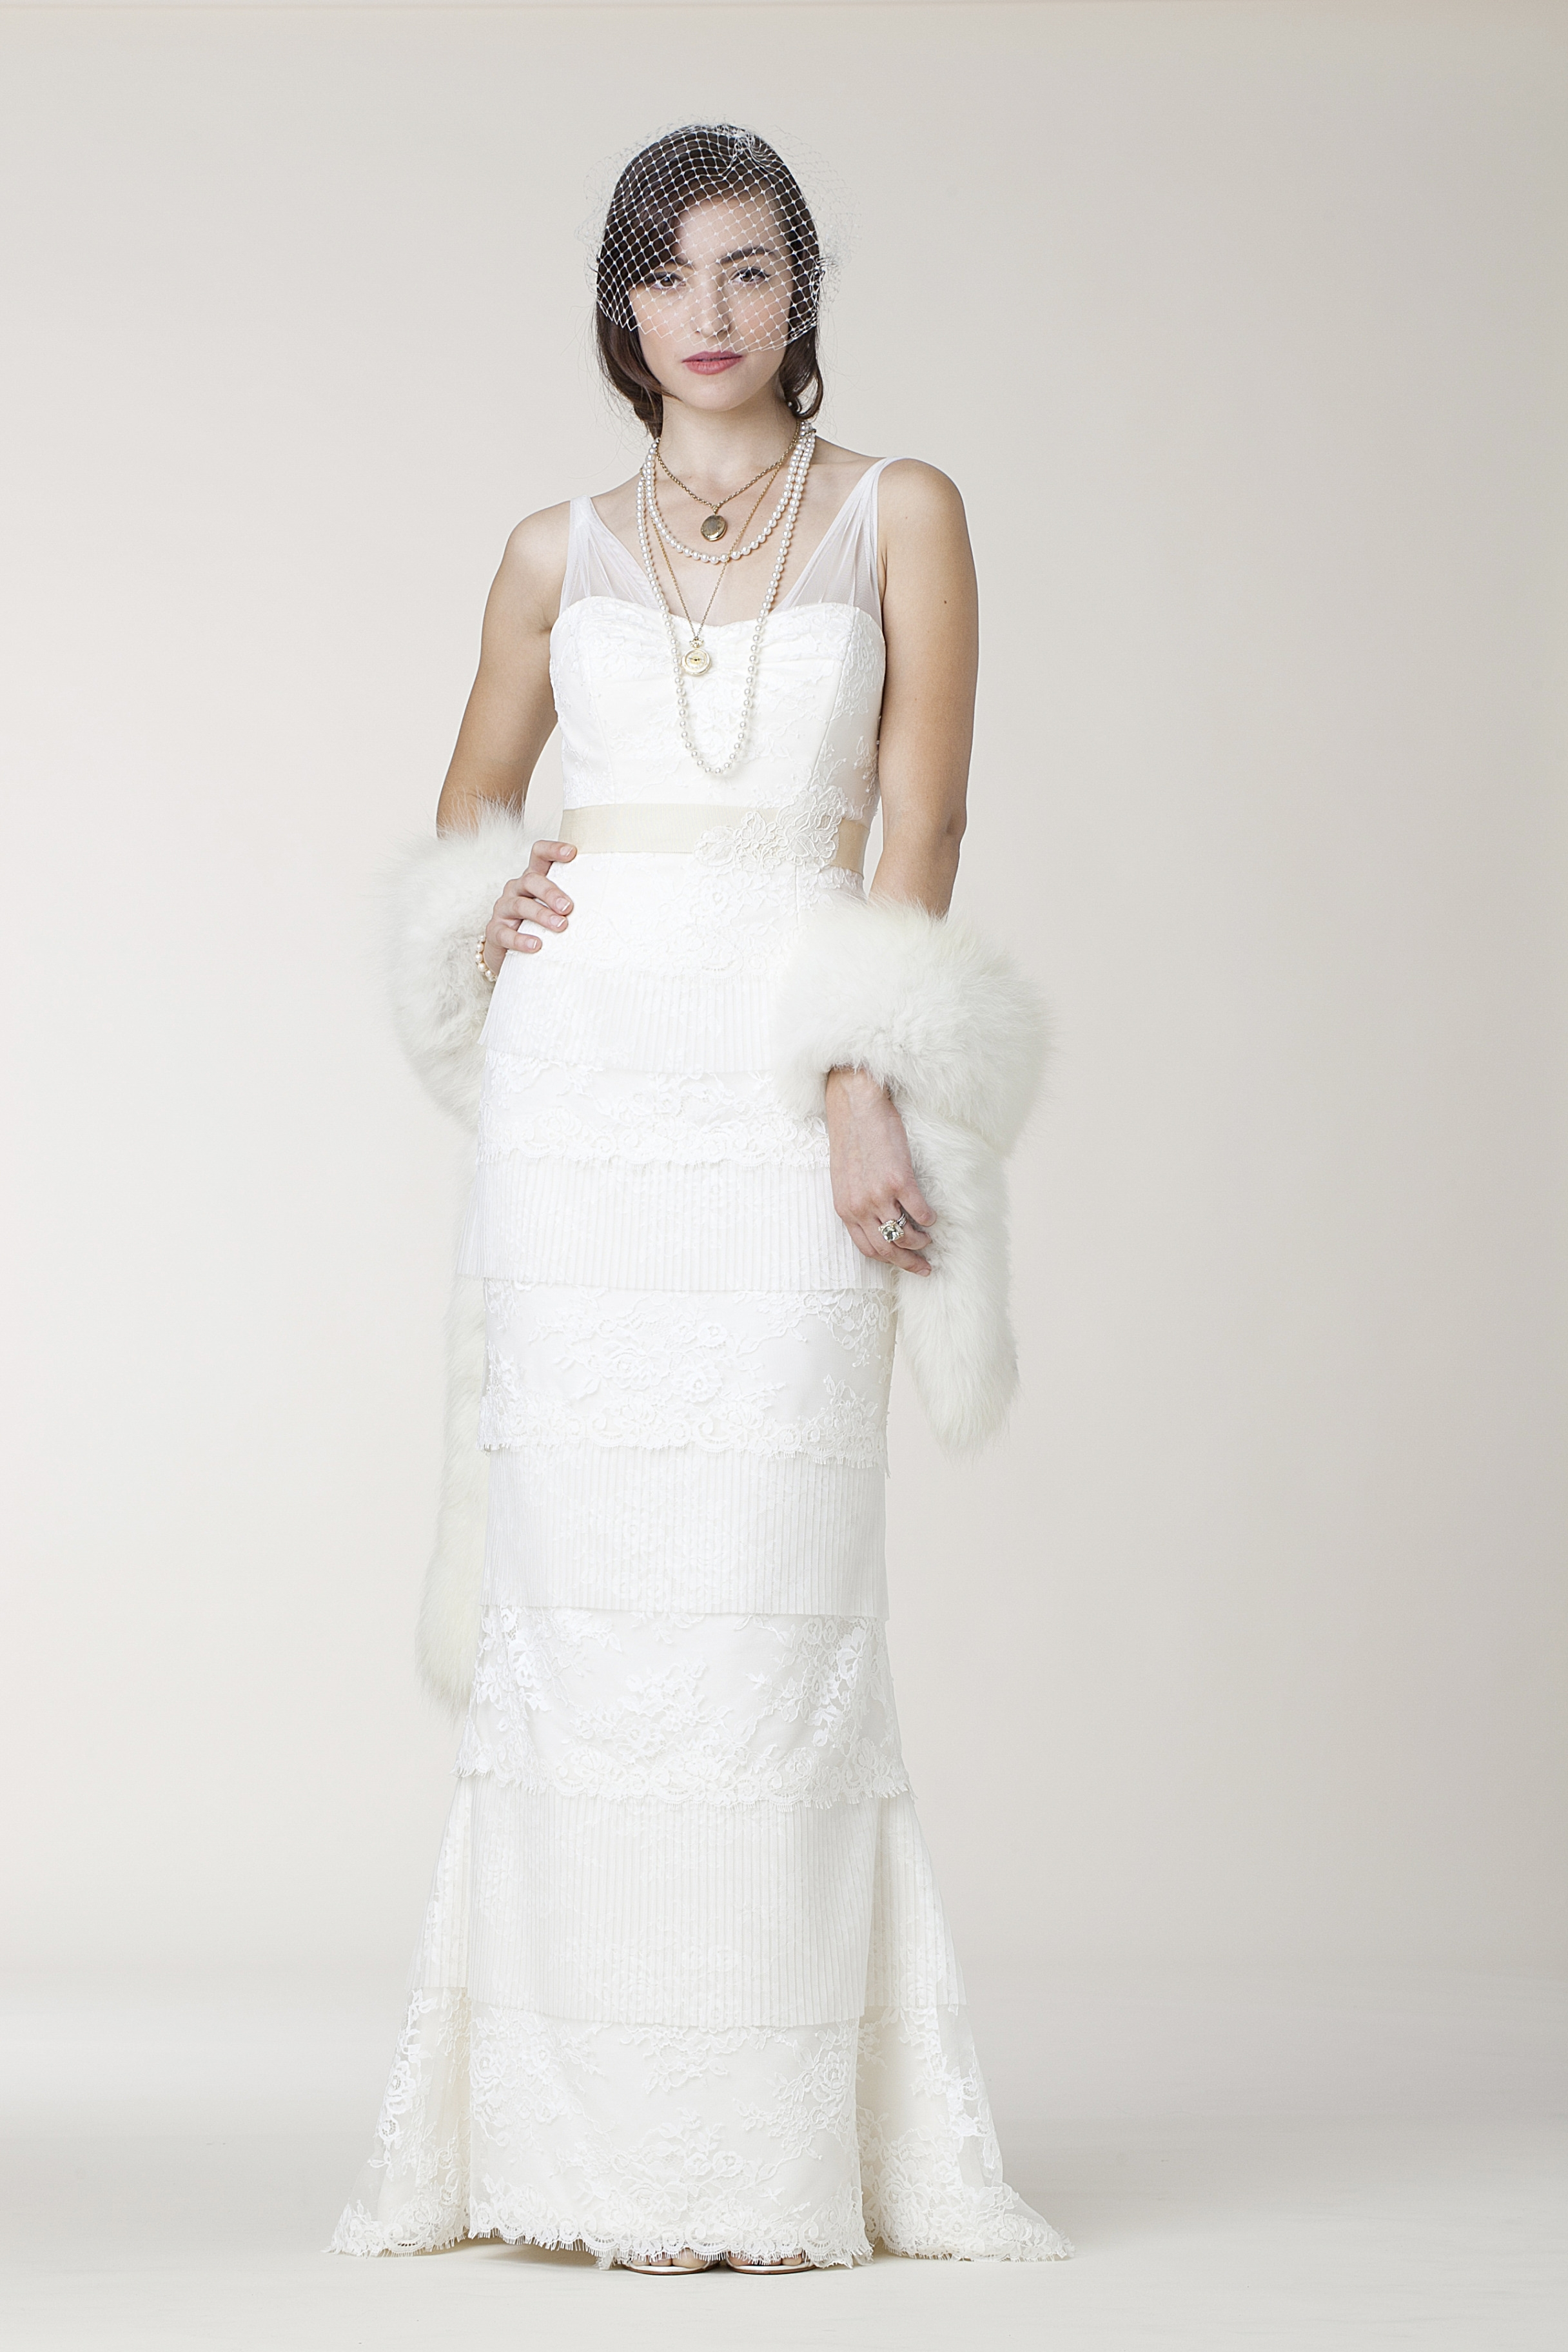 Vintage inspired 2011 lace column wedding dress by Amy